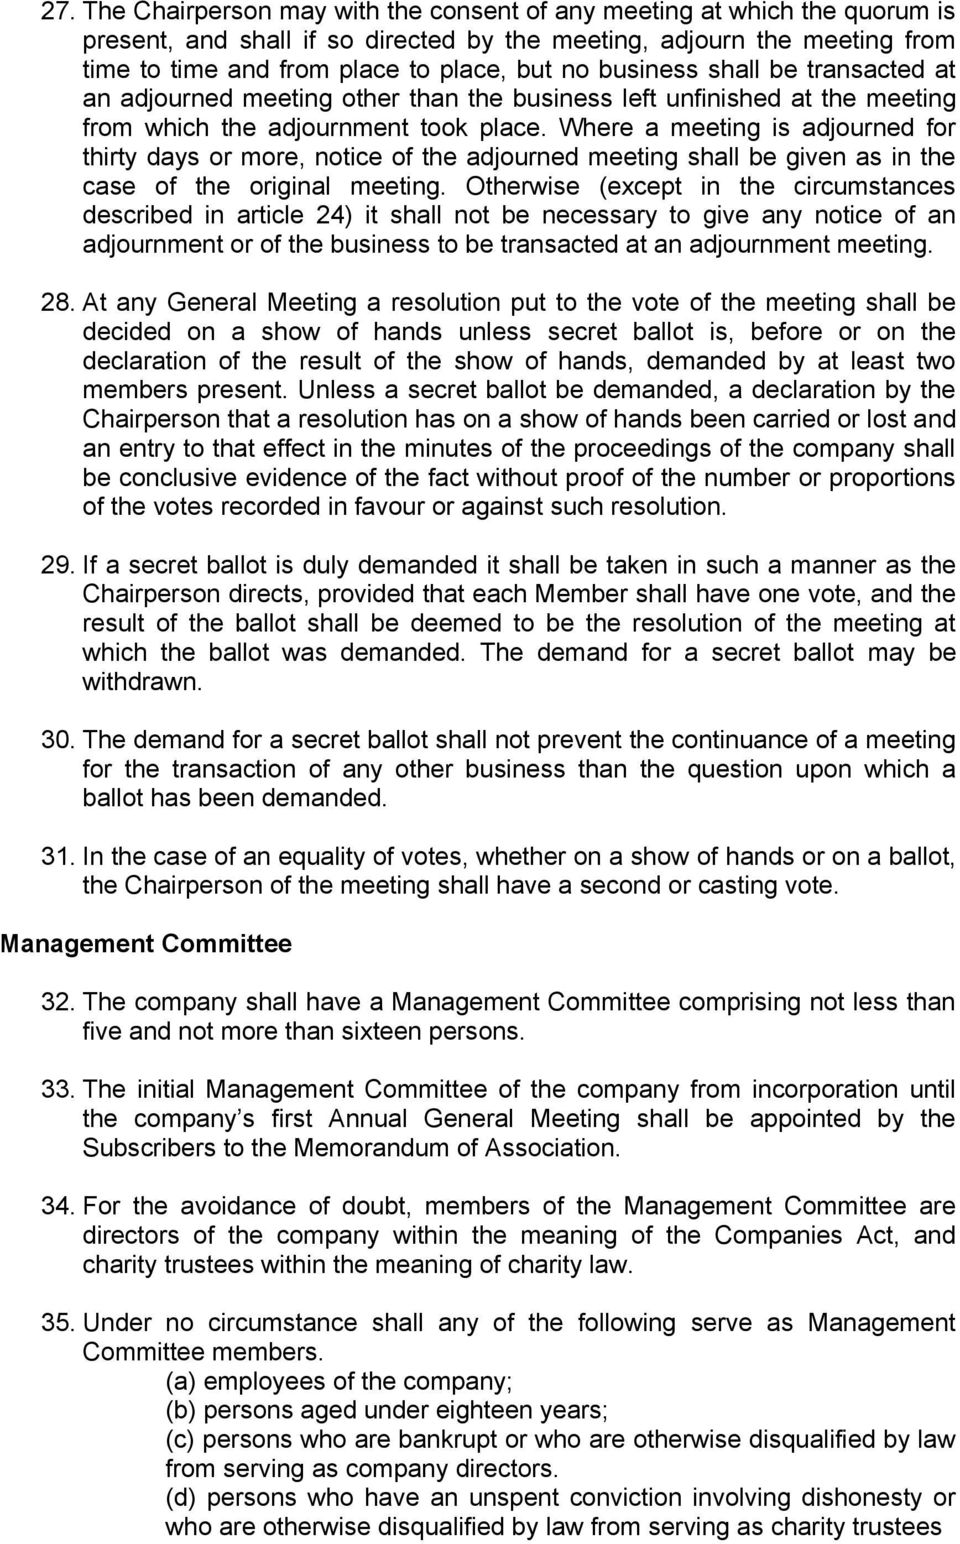 Where a meeting is adjourned for thirty days or more, notice of the adjourned meeting shall be given as in the case of the original meeting.